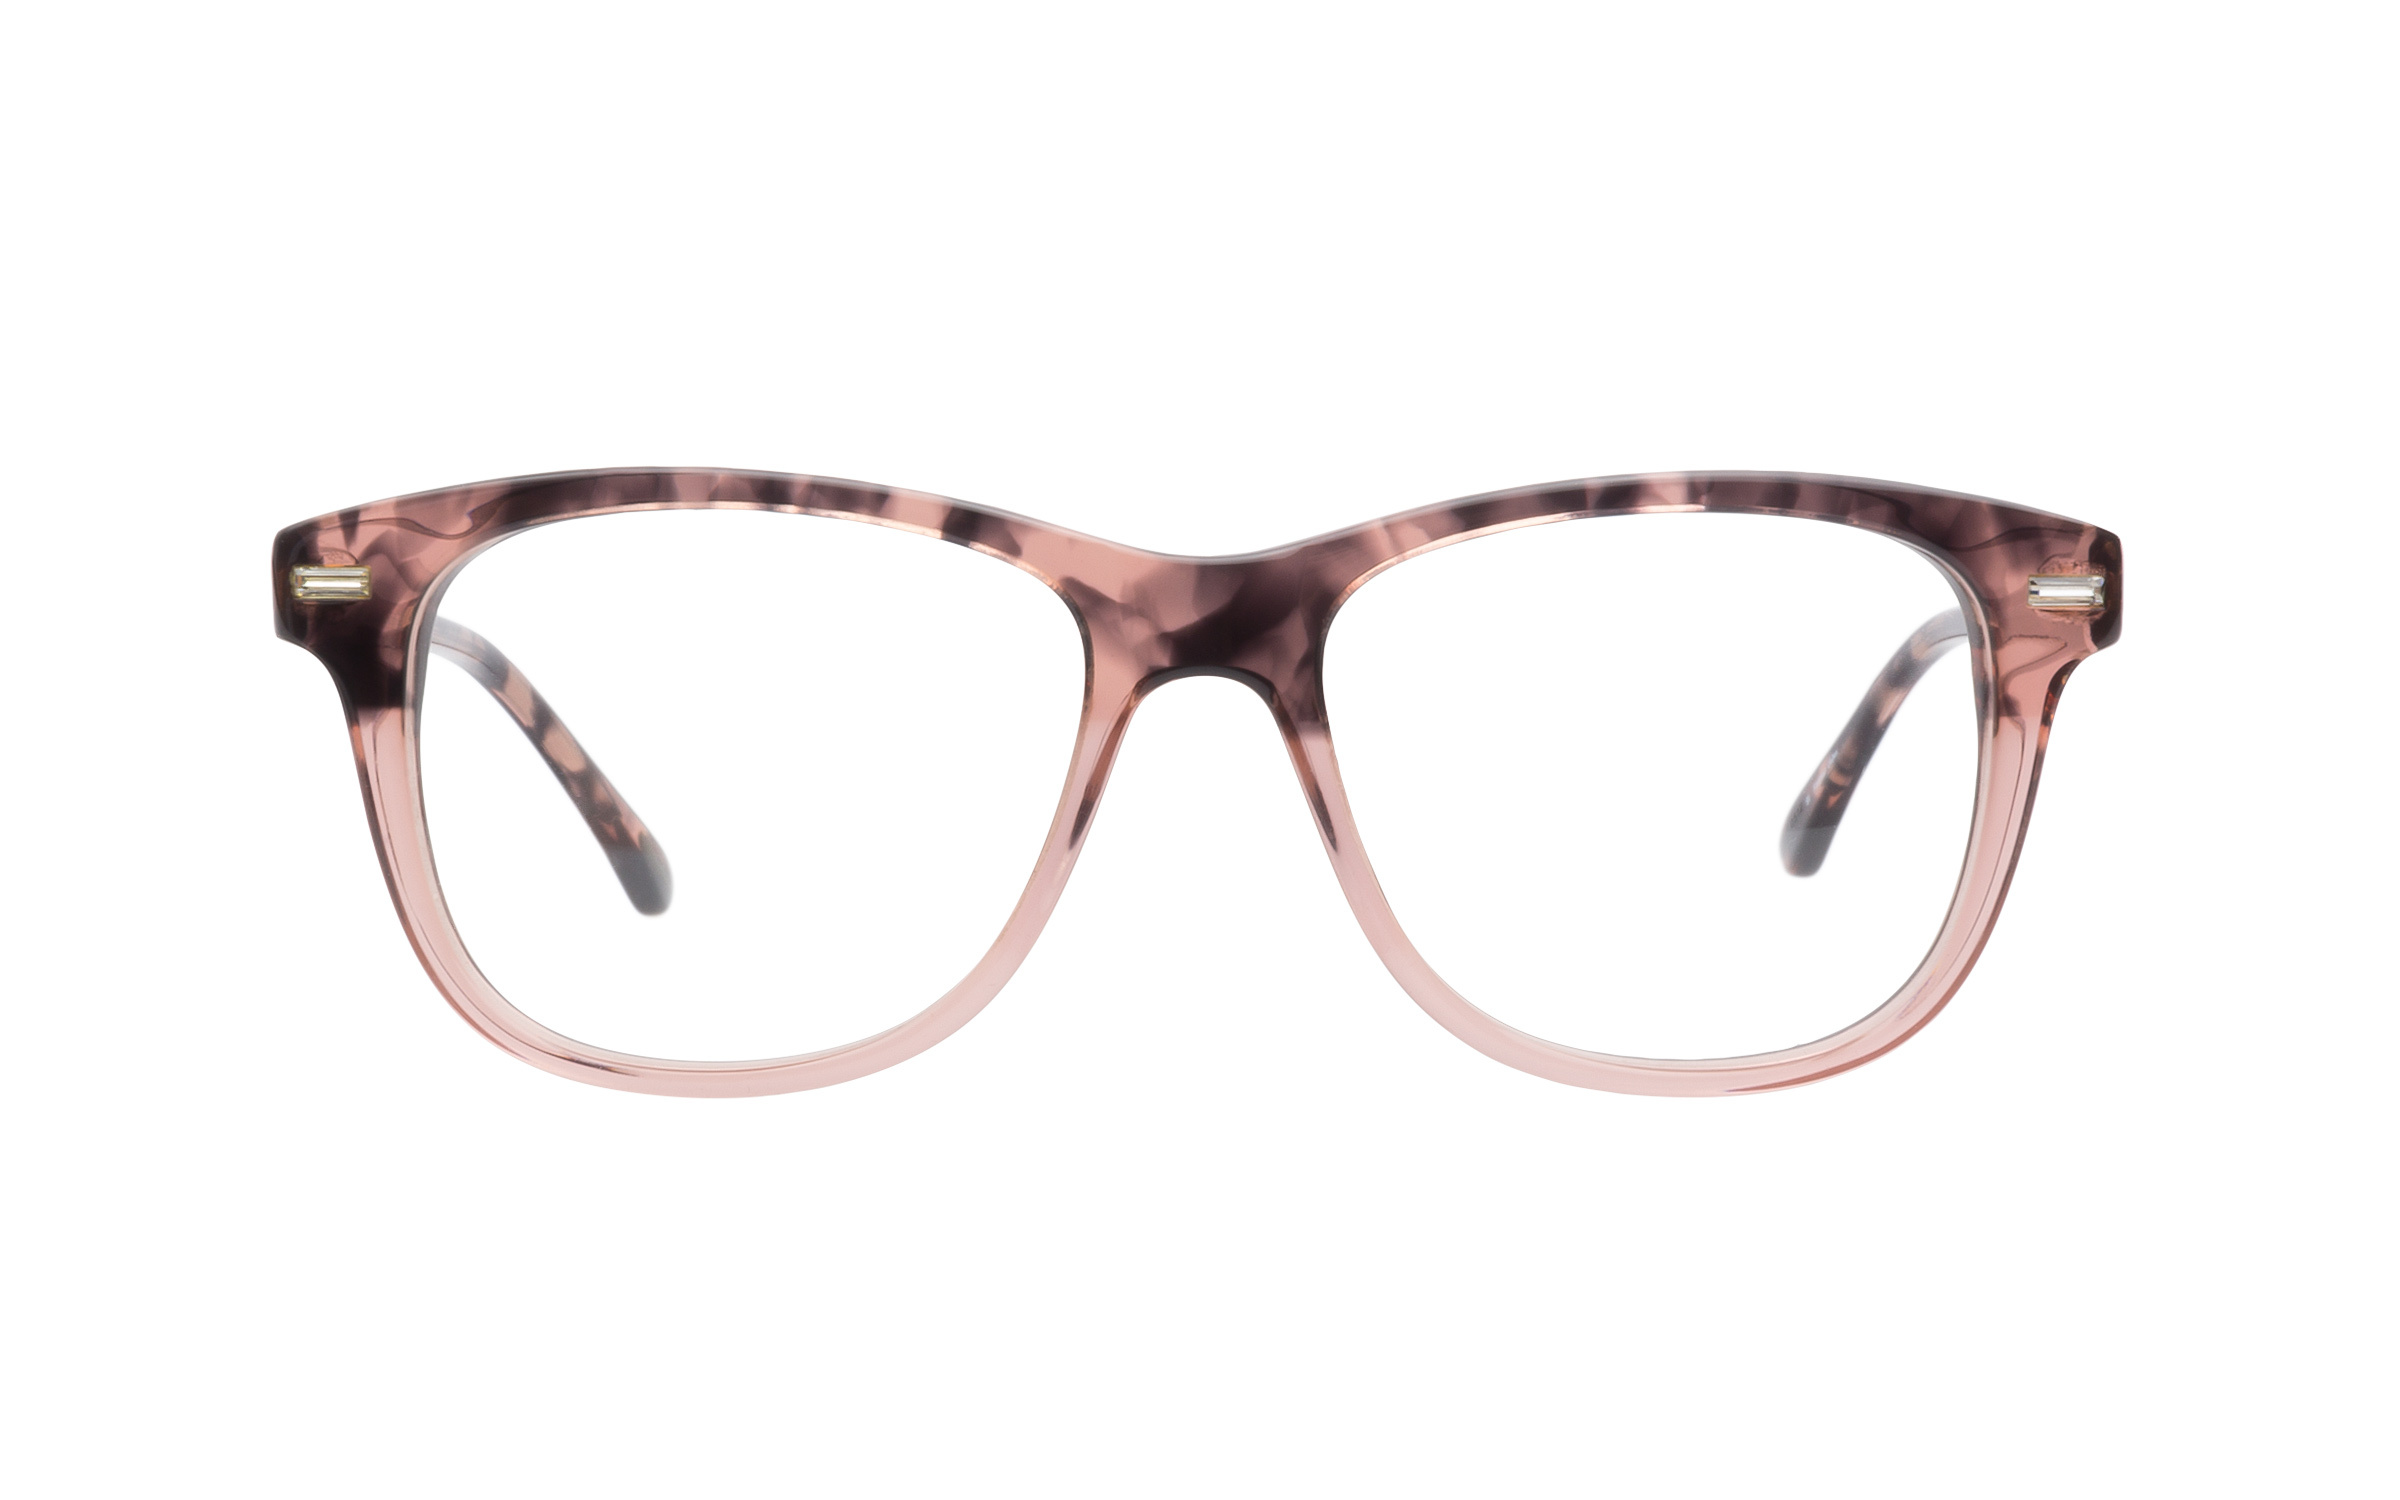 Gant_Womens_Pink_Acetate_Rectangular_Glasses__Clearly_Glasses_Online